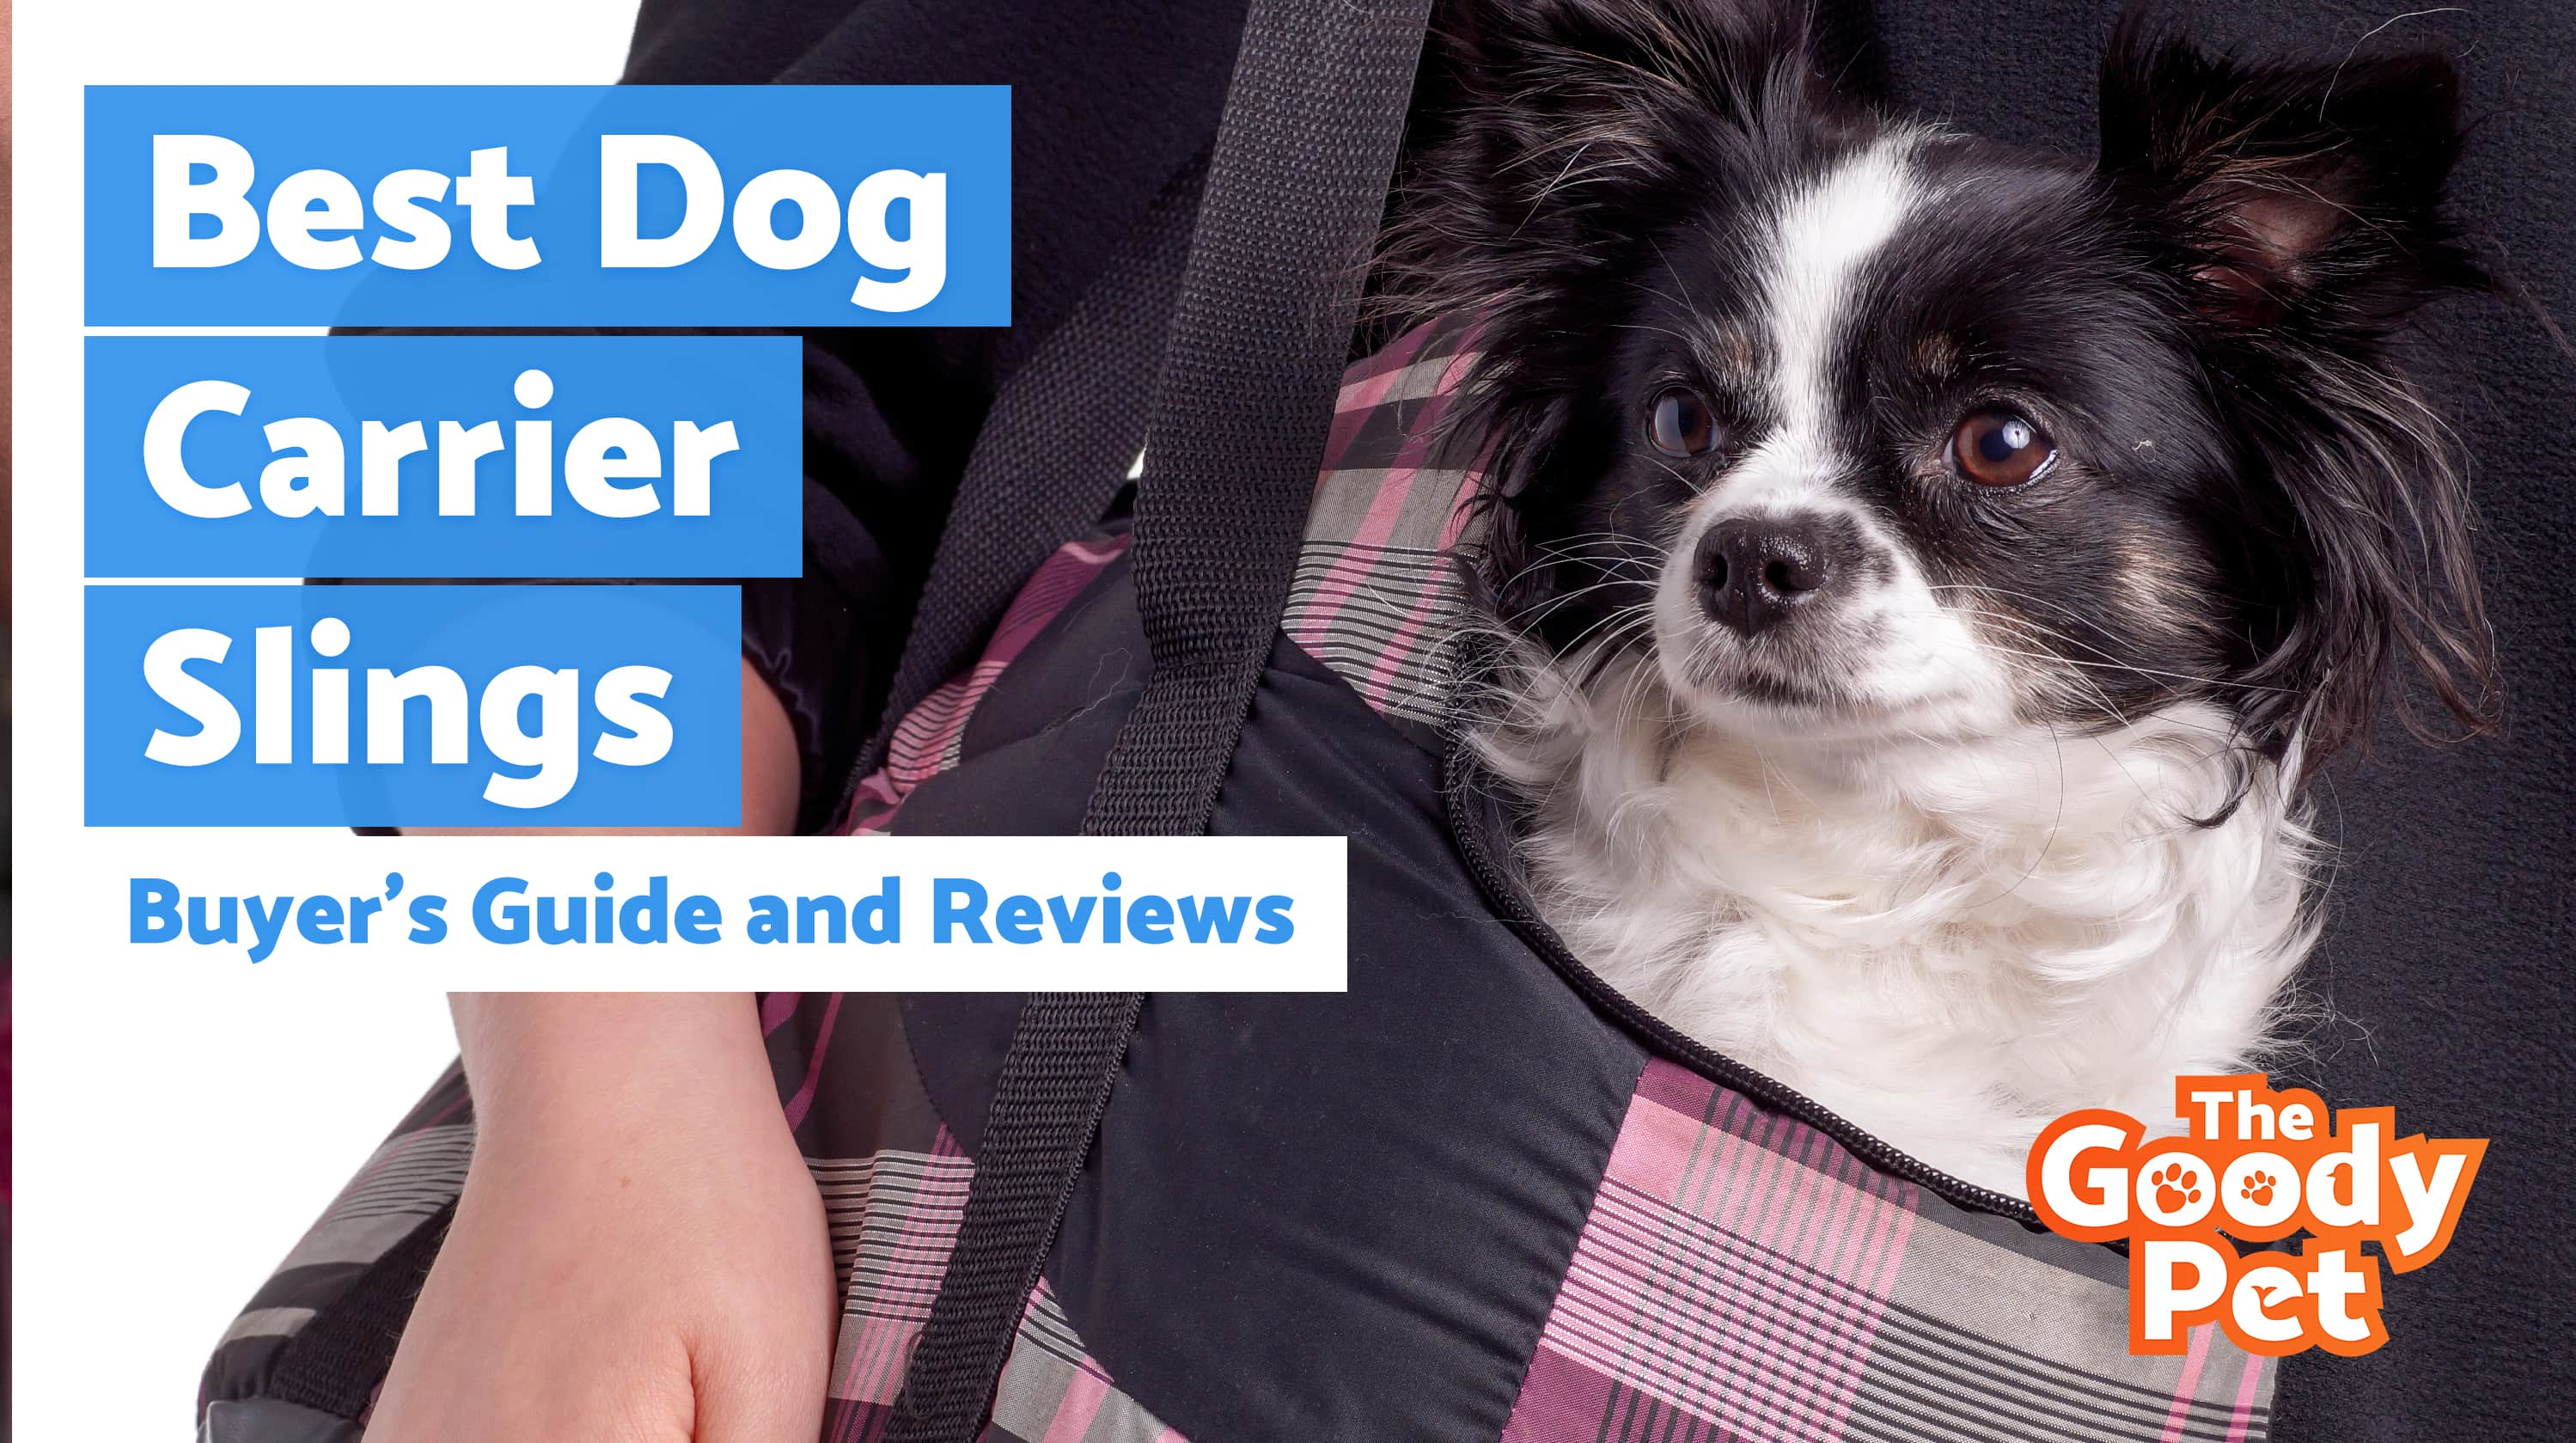 Best Dog Carrier Slings To Carry Your Pooch Around – Our 2019 Reviews & Top Picks